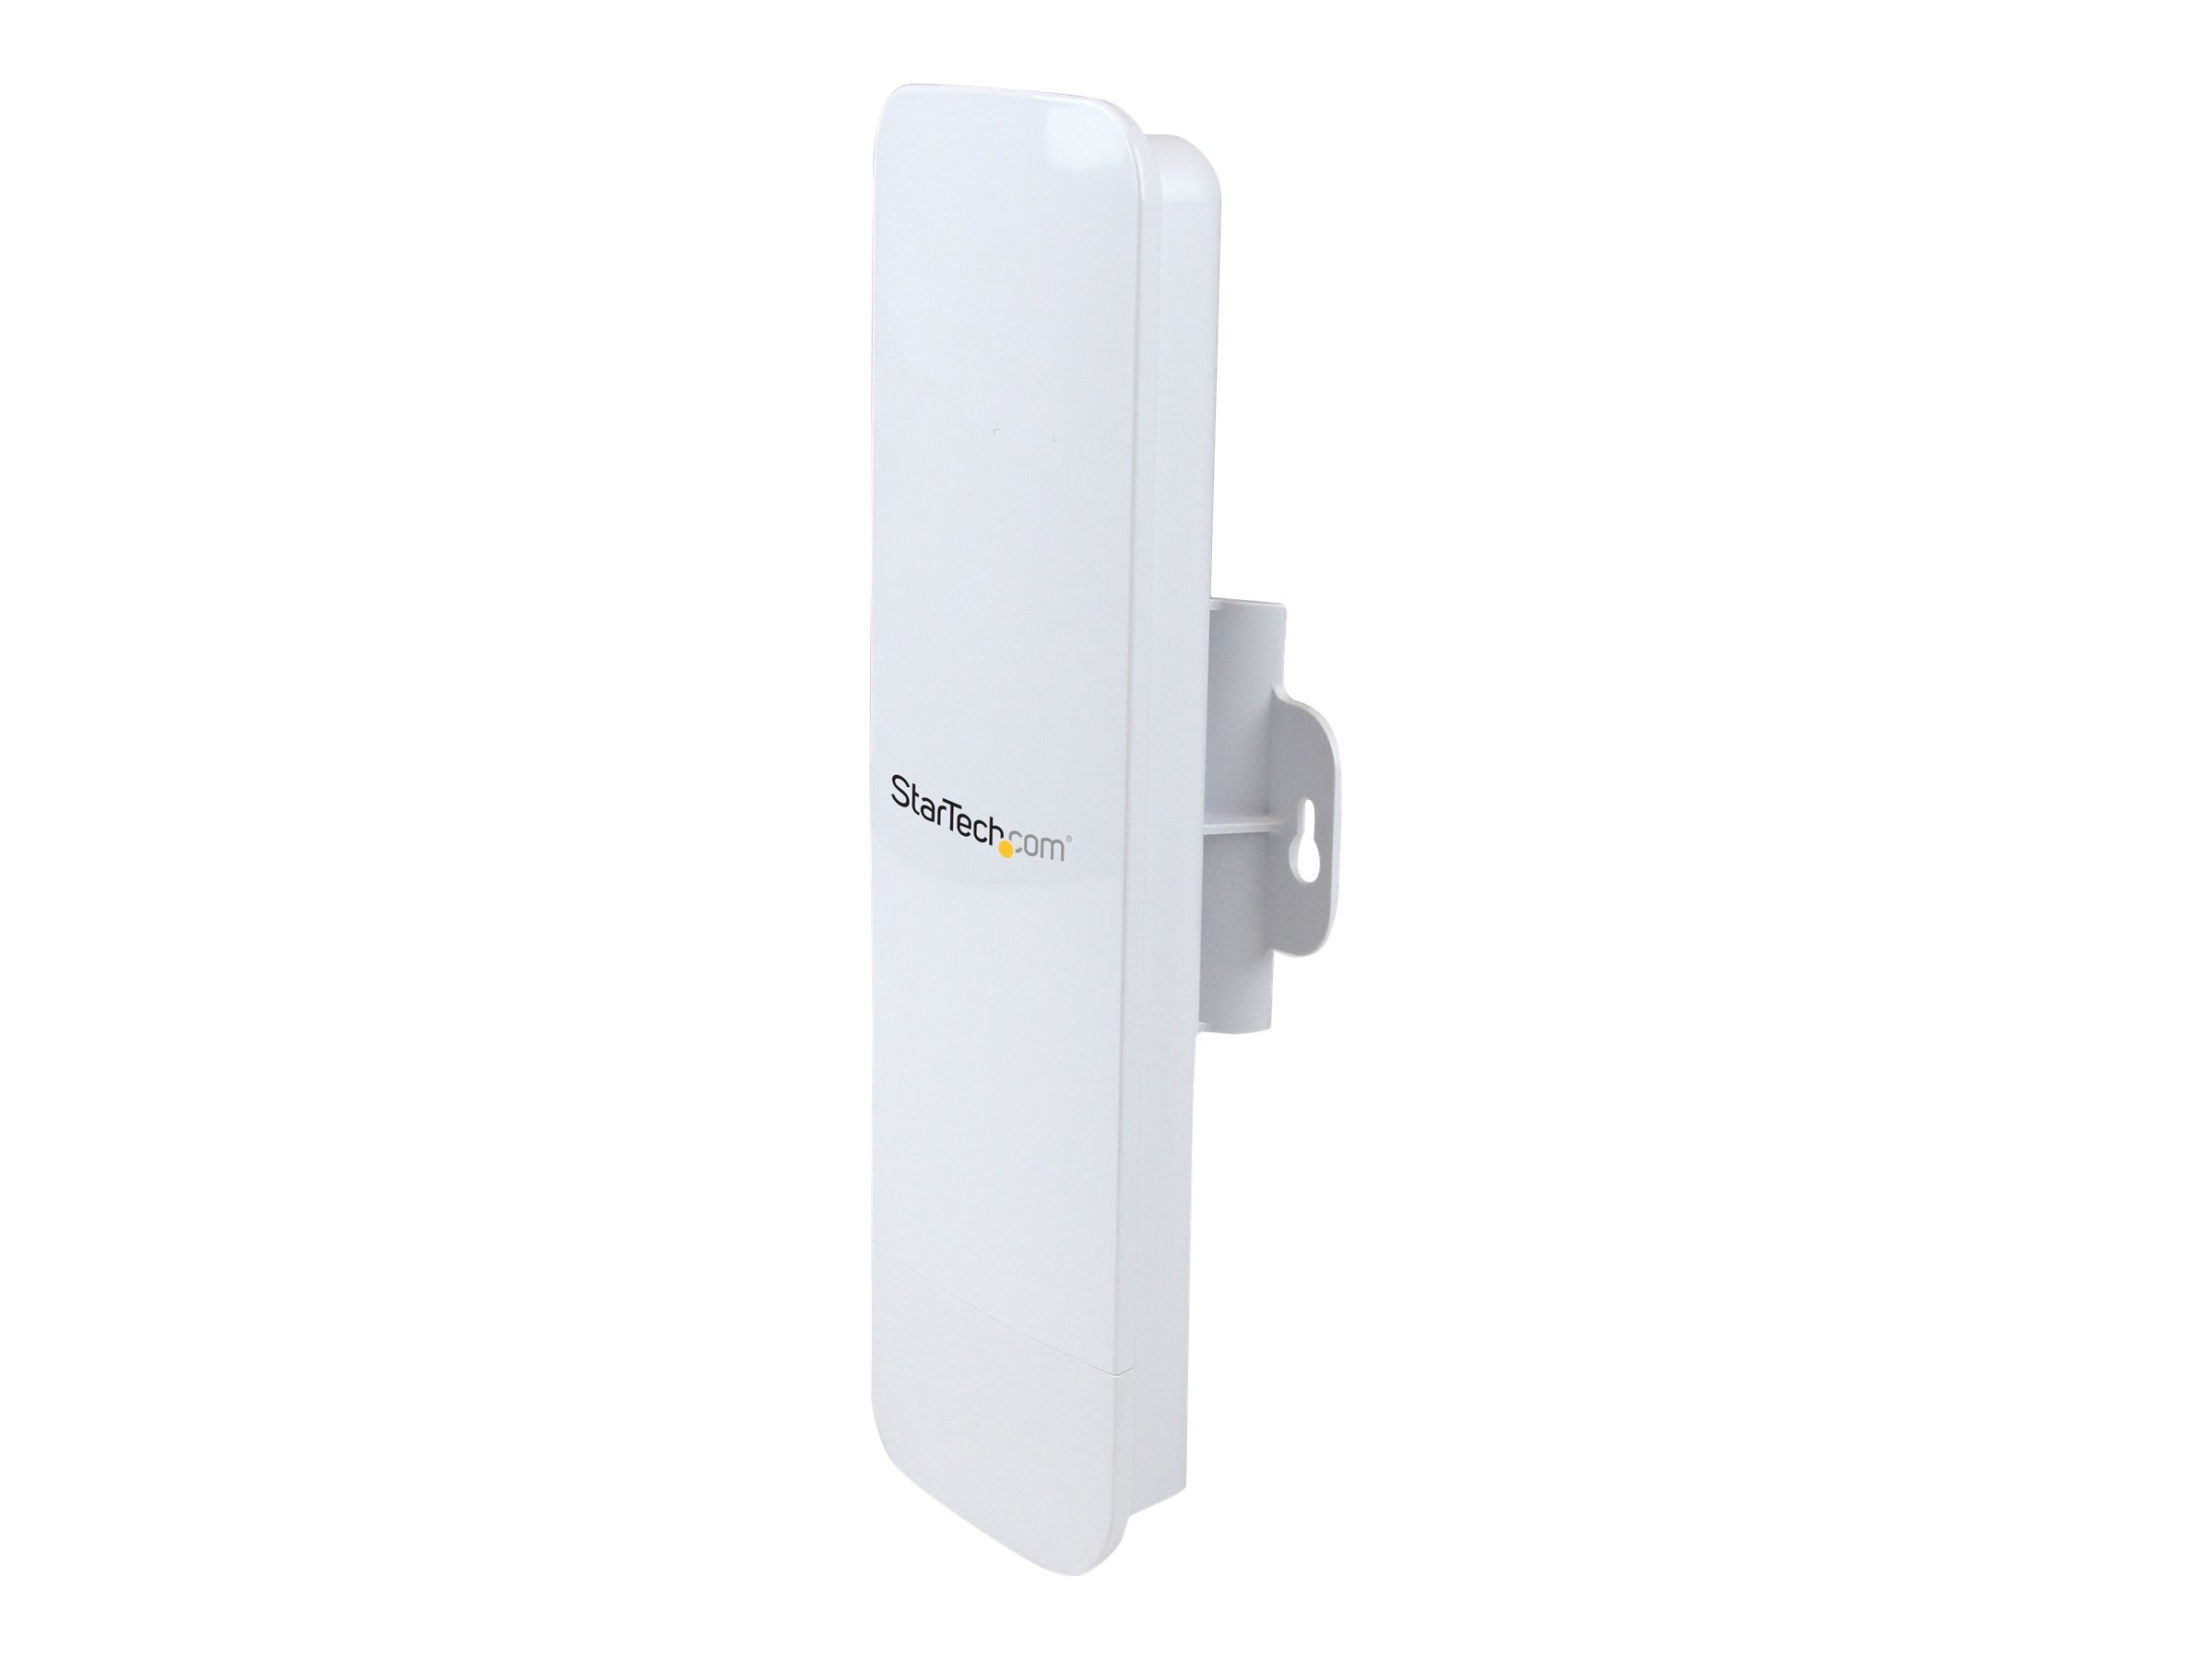 StarTech.com Outdoor 300Mbps 2T2R Wireless-N Access Point 5GHz 802.11a n PoE-Powered WiFi, R300WN22OP5